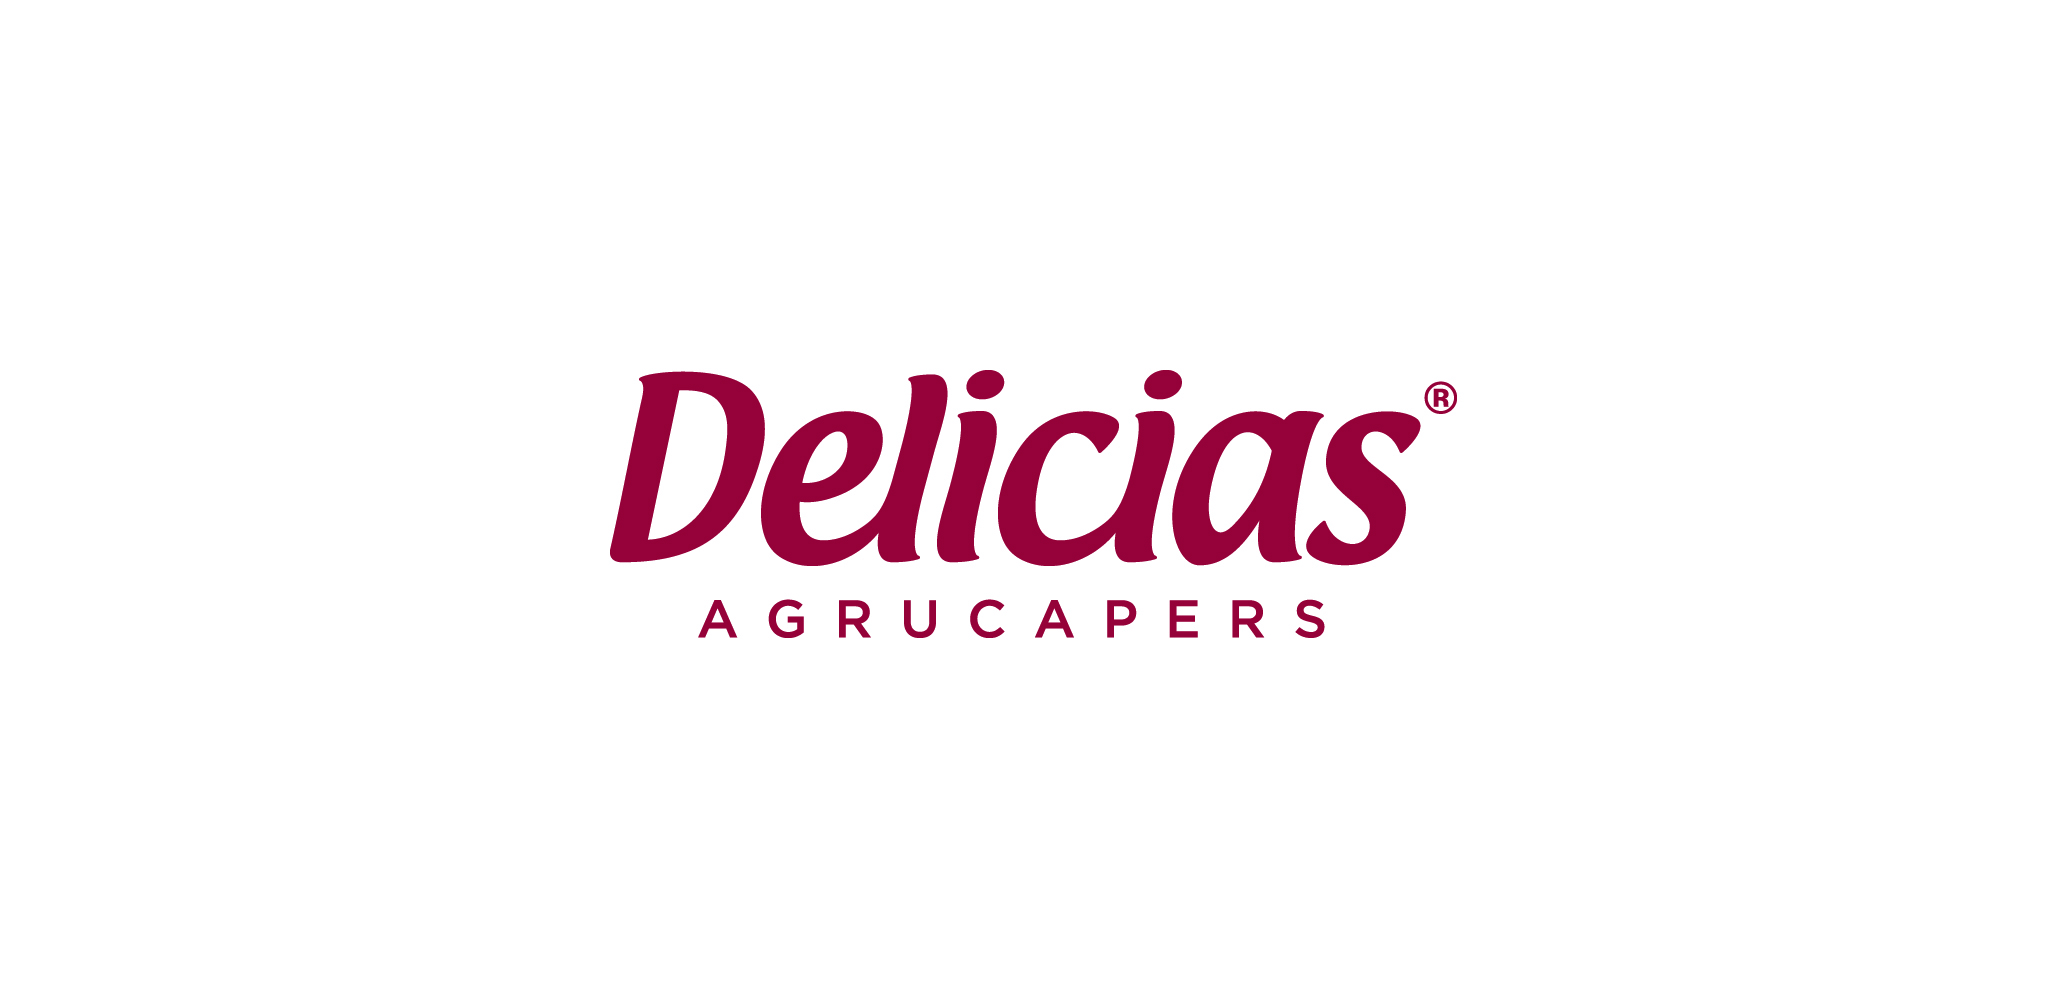 AGRUCAPERS, S.A.